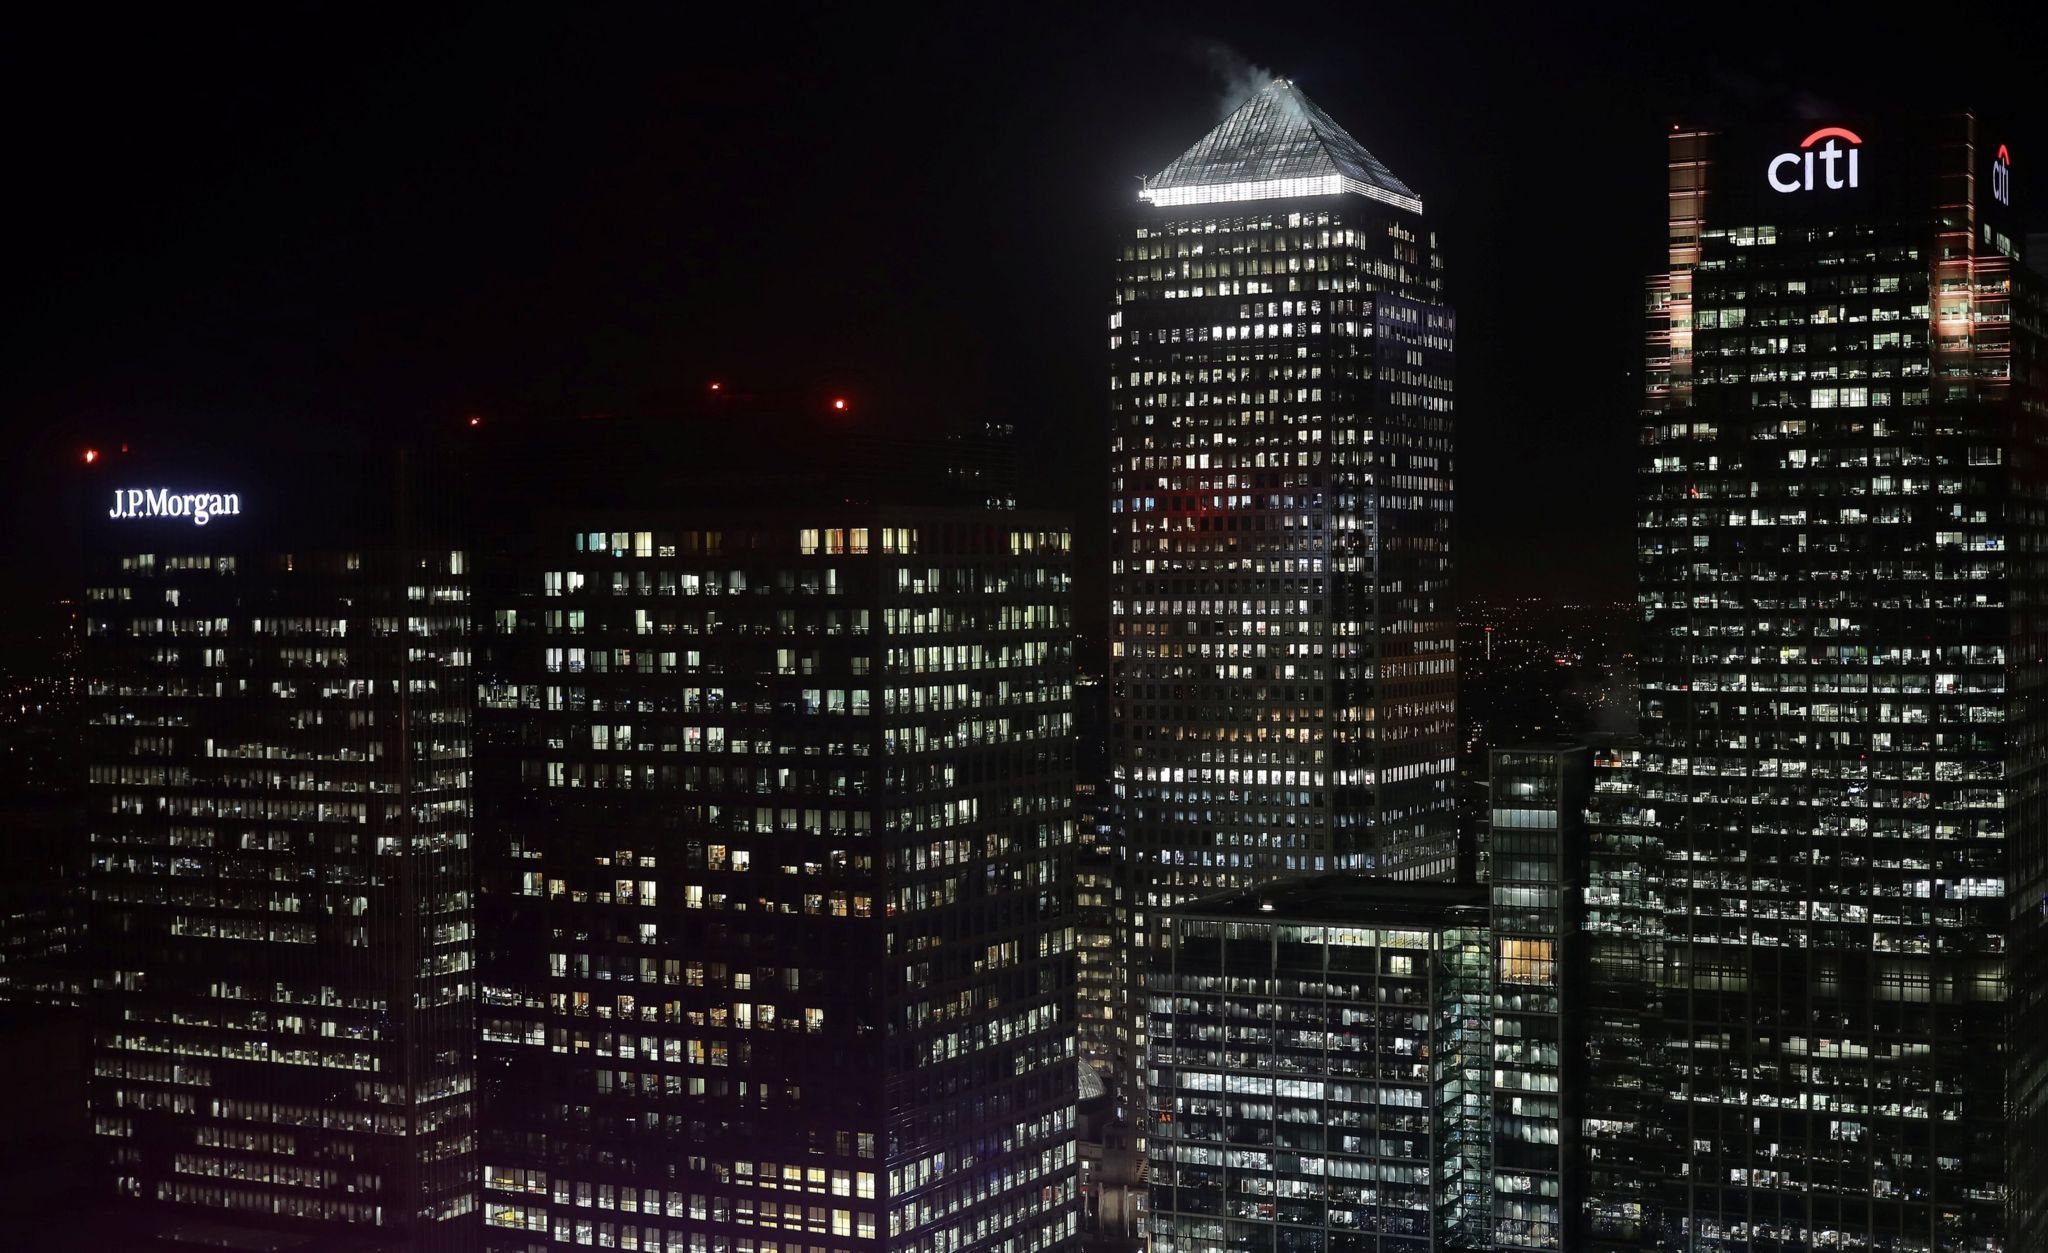 Citibank and J P Morgan buildings are seen in the financial district of Canary Wharf in London, Britain 19 January 2017